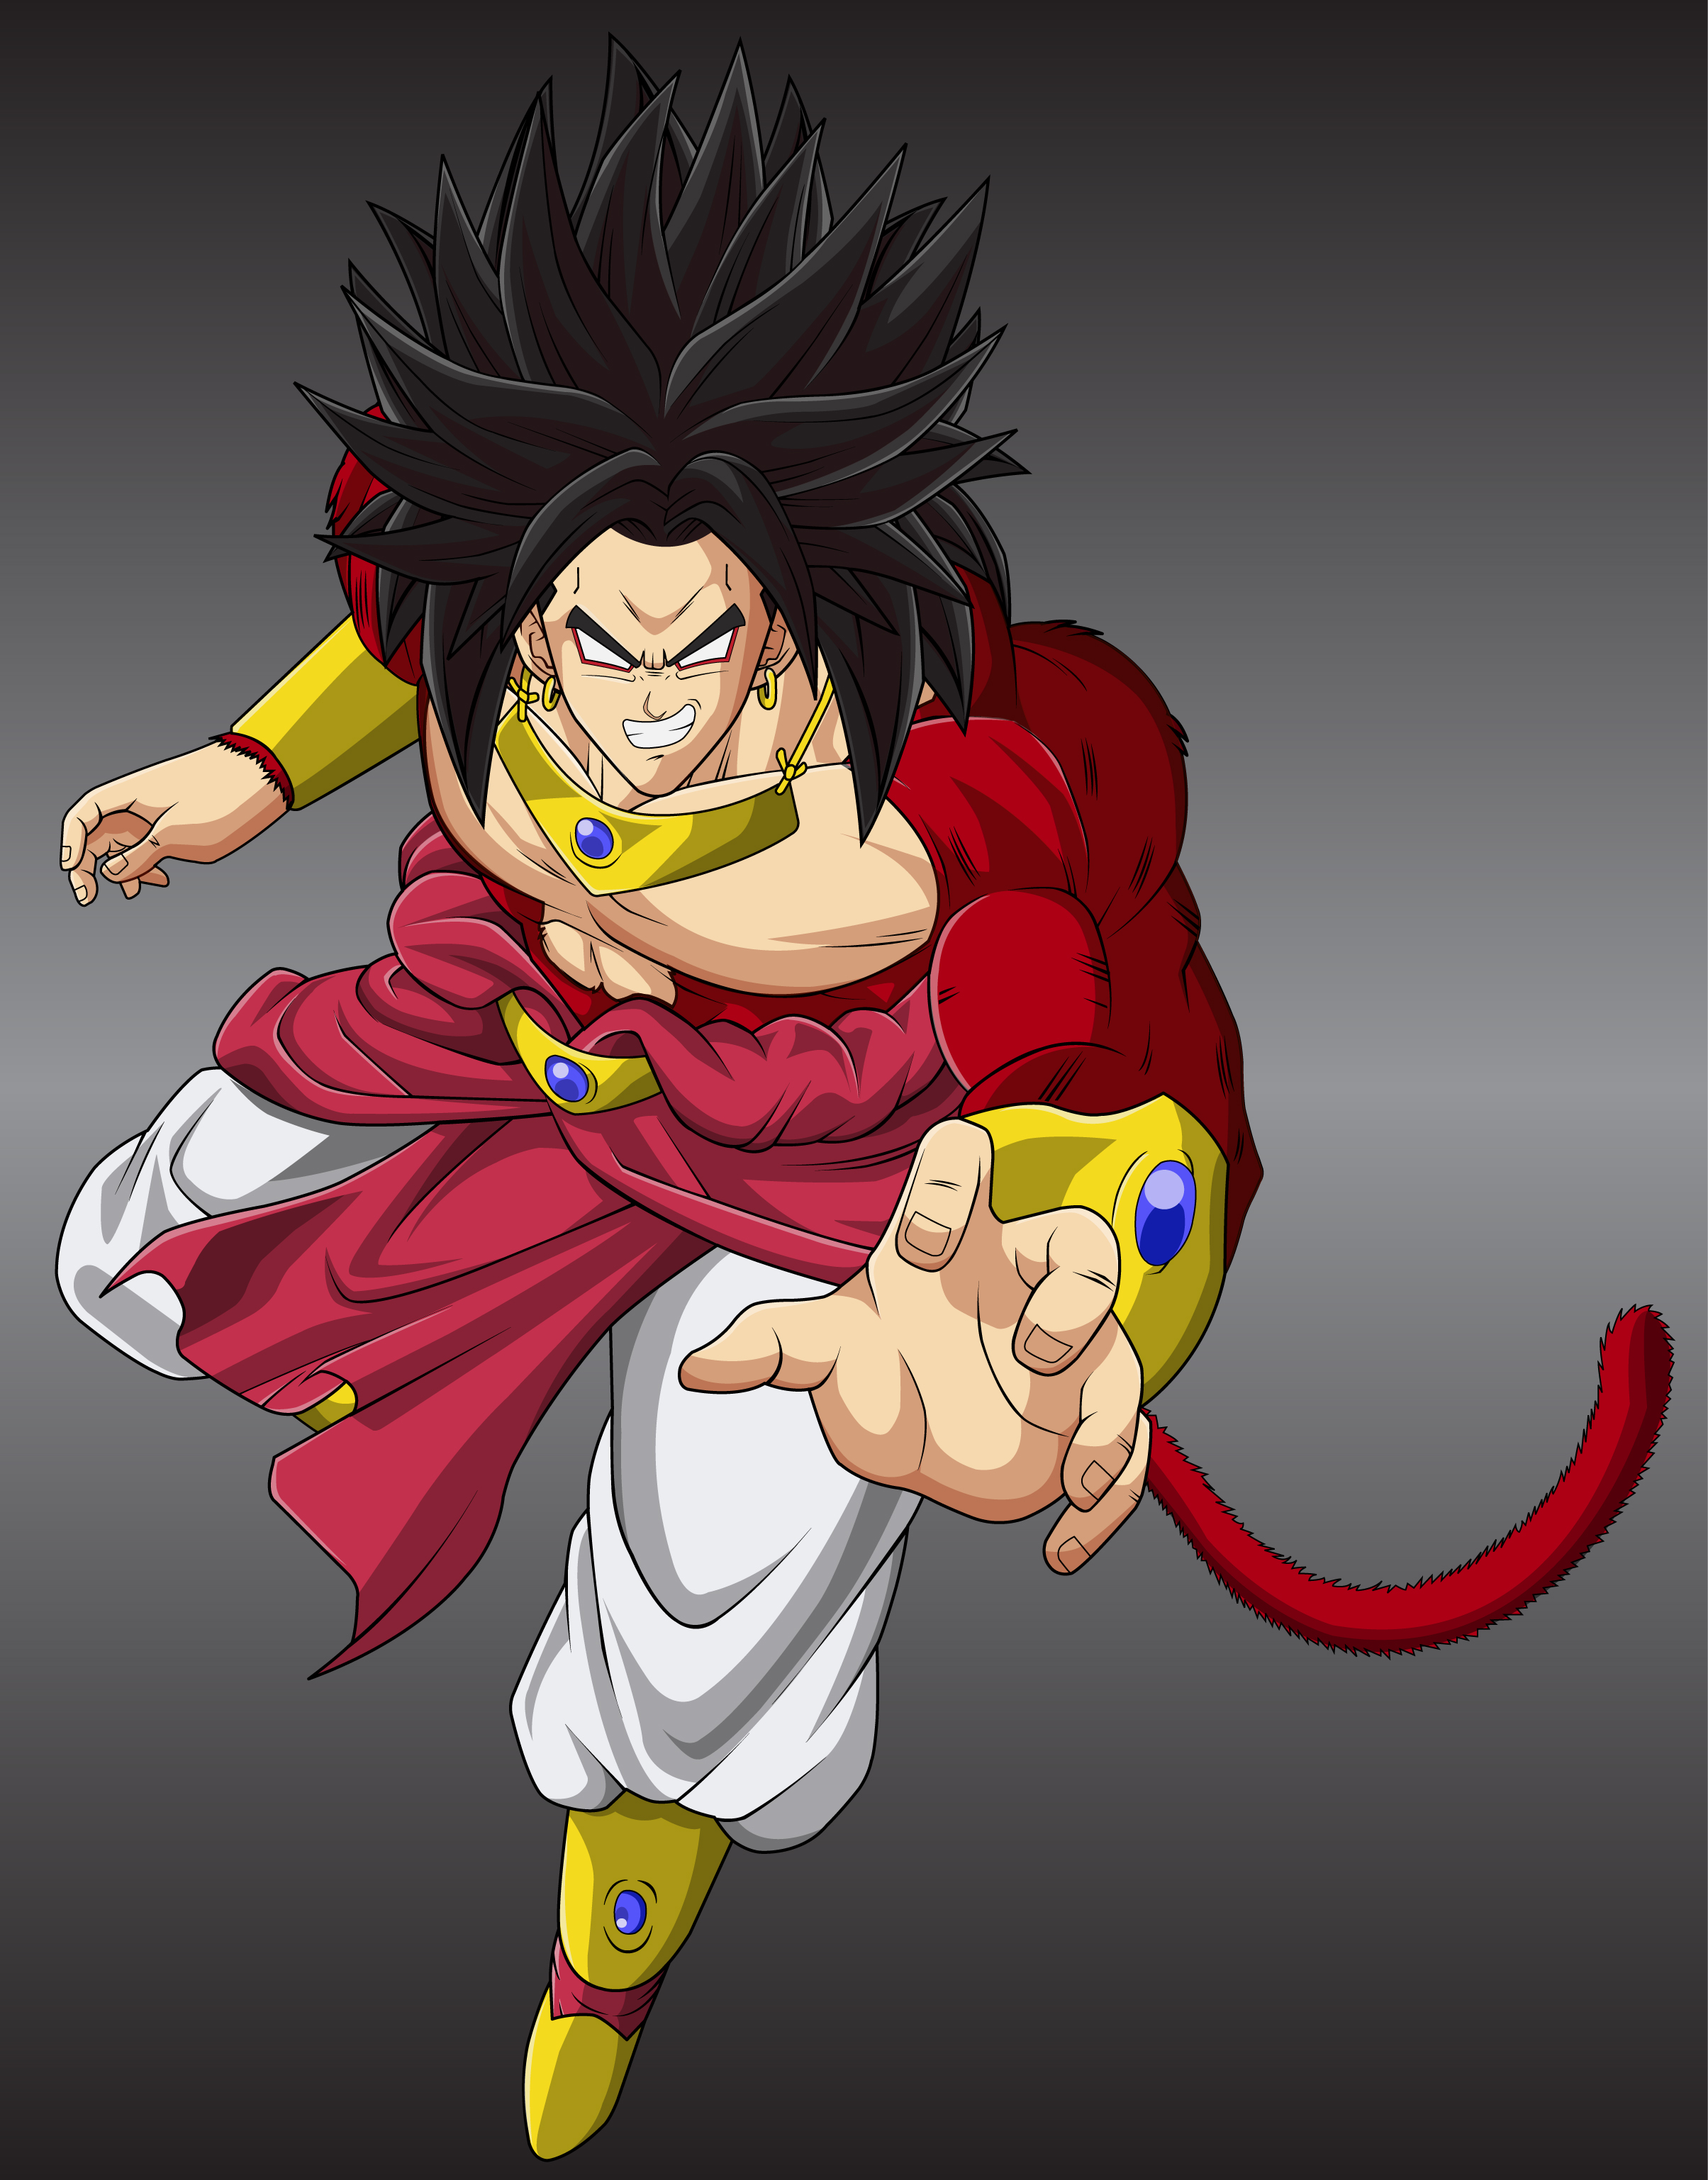 Another Broly SSJ4 by MasterRottweiler on DeviantArt